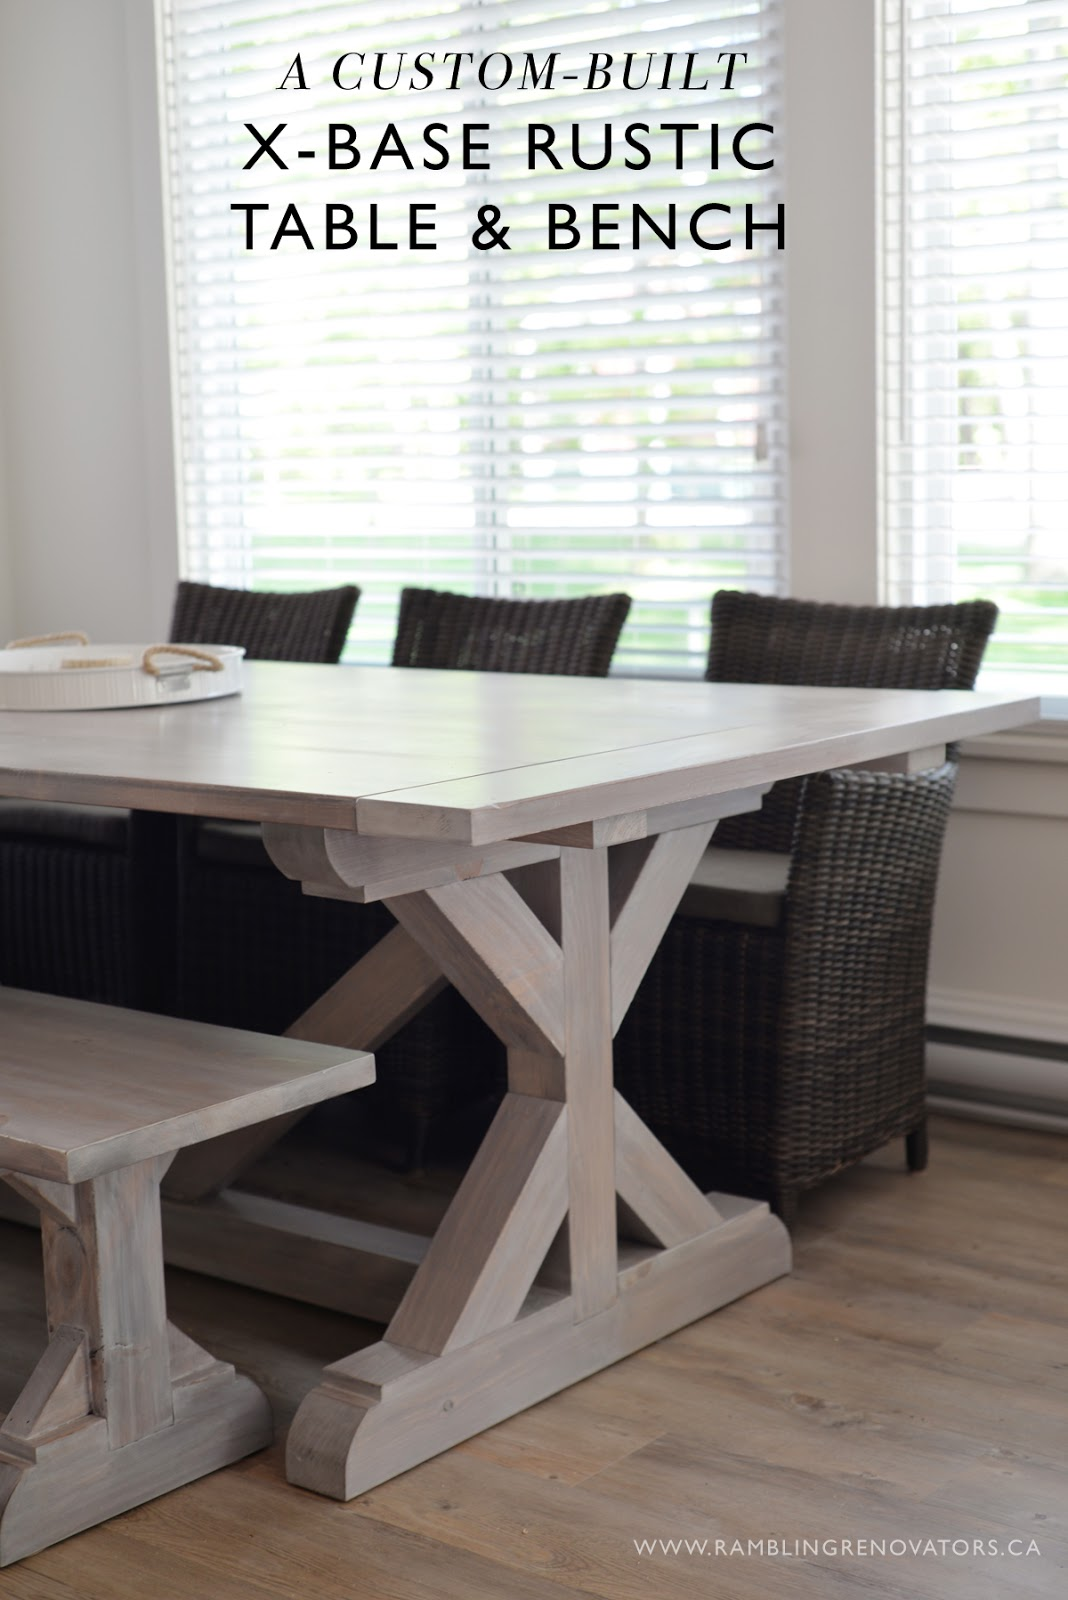 Ramblingrenovators.ca | custom handmade rustic x-base farmhouse table with beachy stain finish